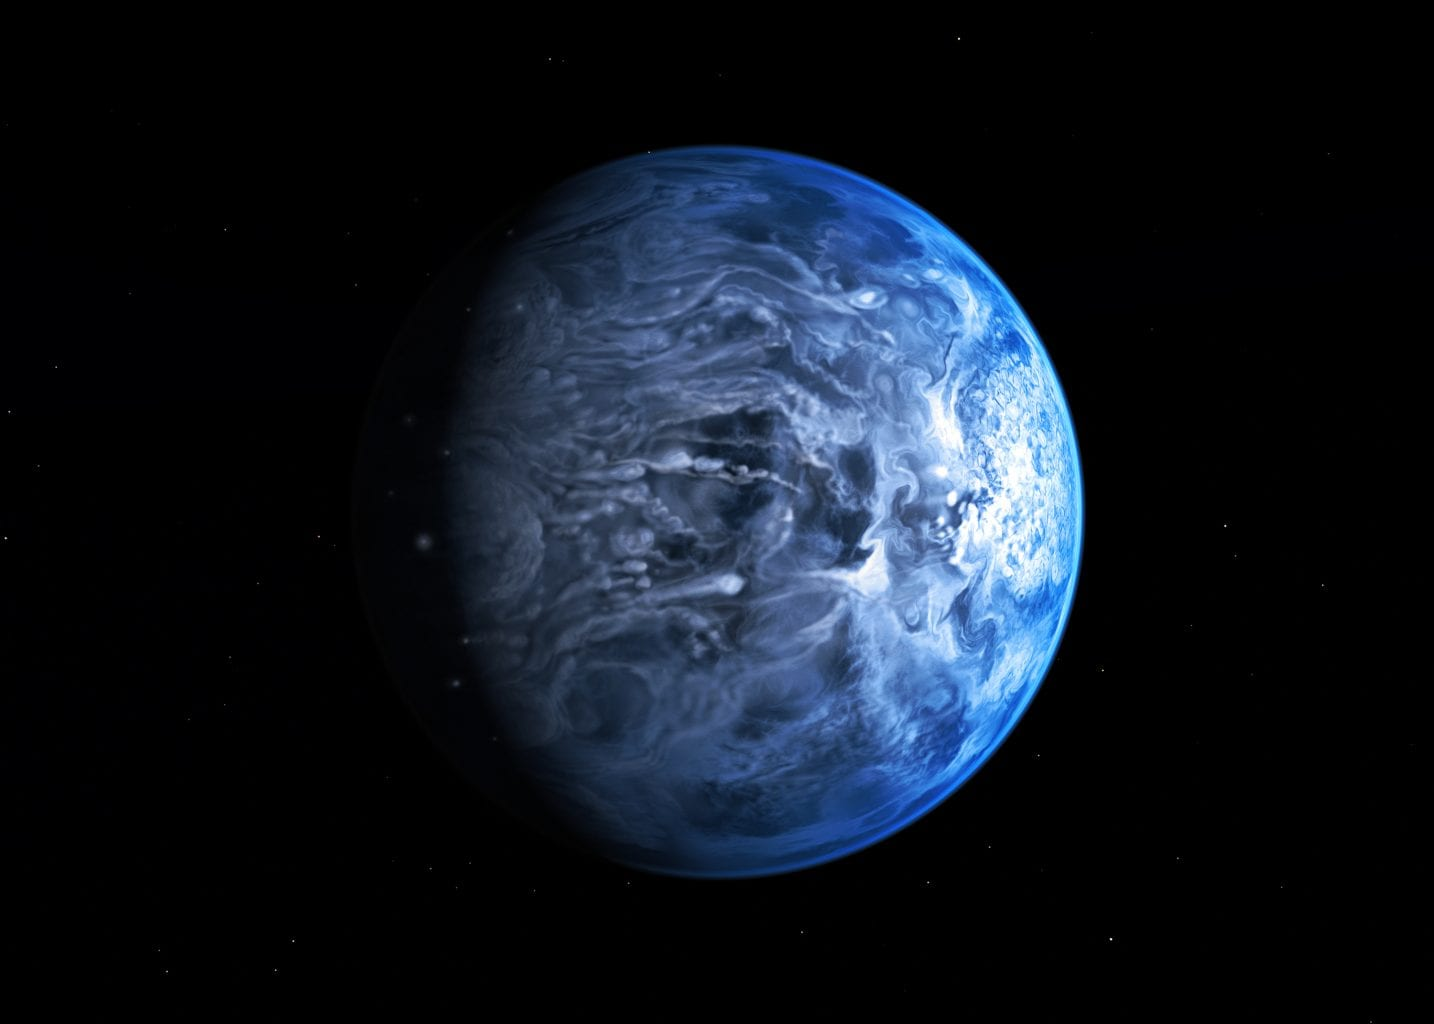 Exoplanet HD 189733b by NASA, the terrifying planet with endless rains of glass. Source: NASA